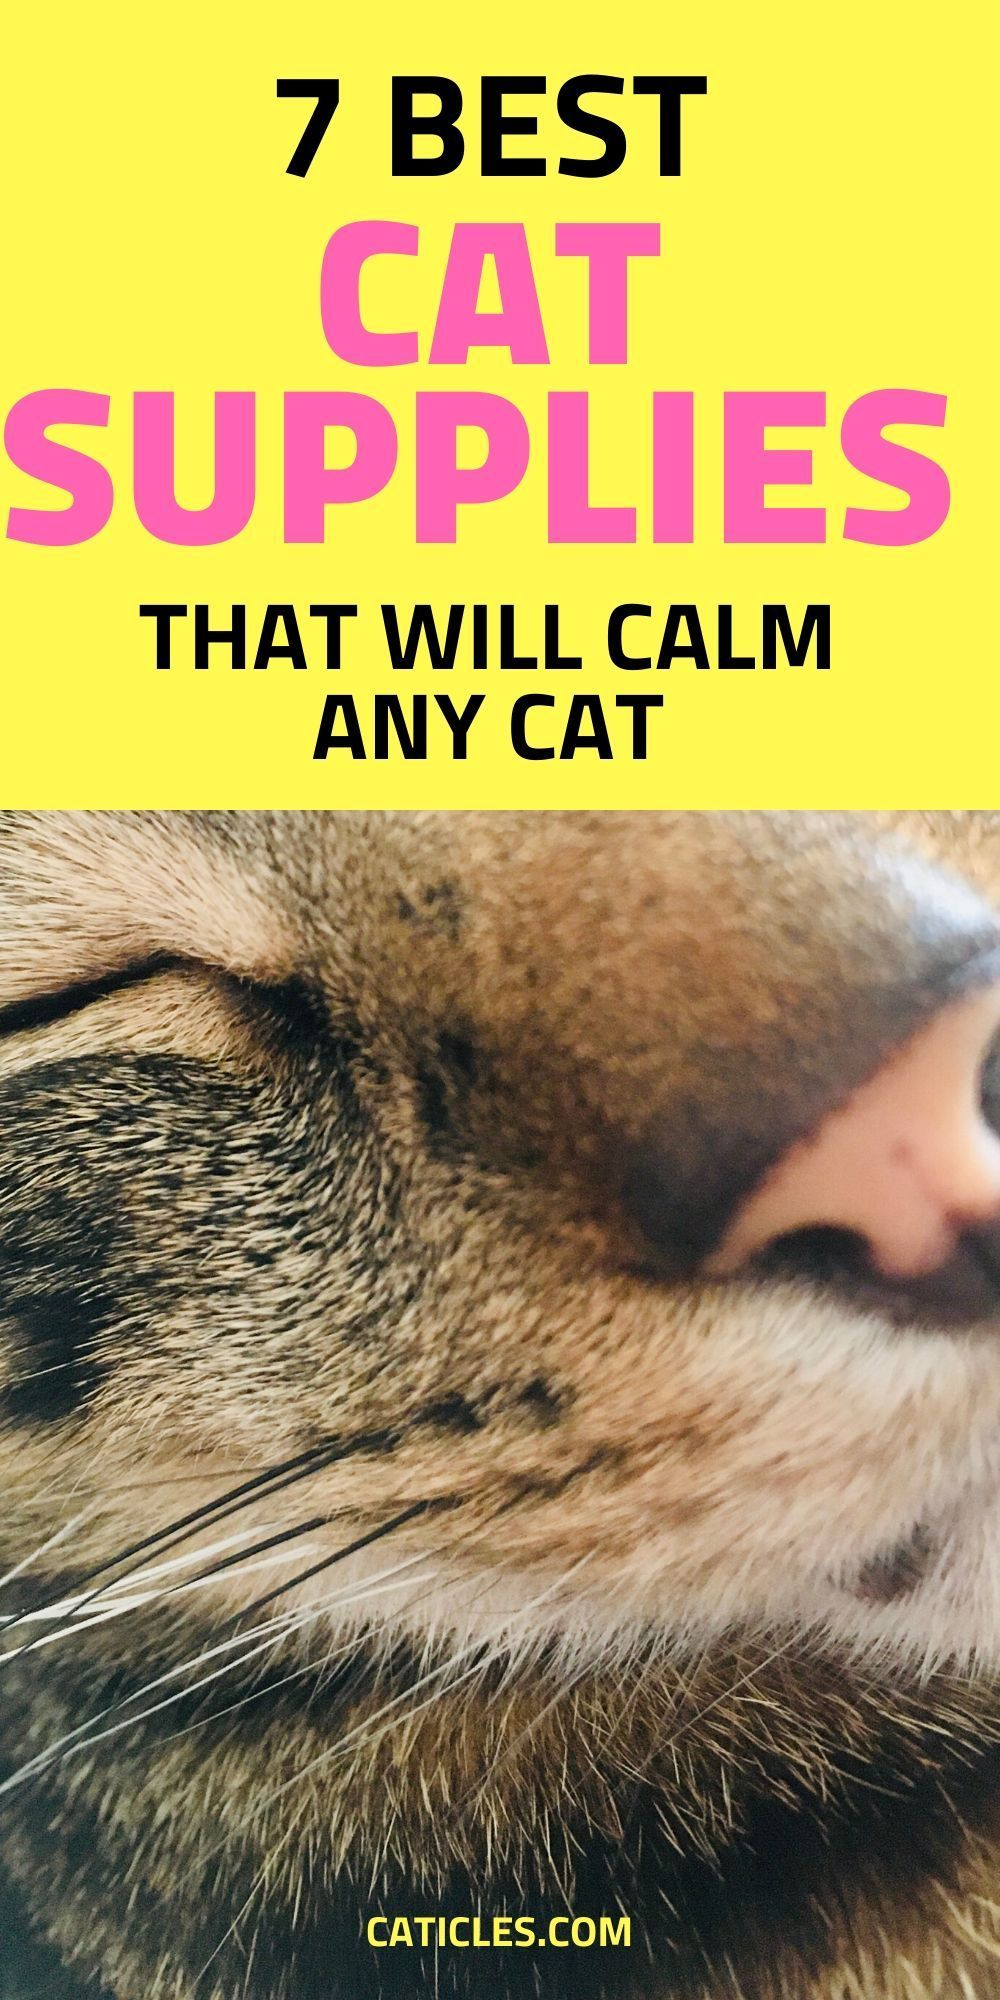 How To Calm Down A Scared Cat And Help The Cat Adjust Caticles In 2020 Calming Cat Cat Life Hacks Cat Essentials